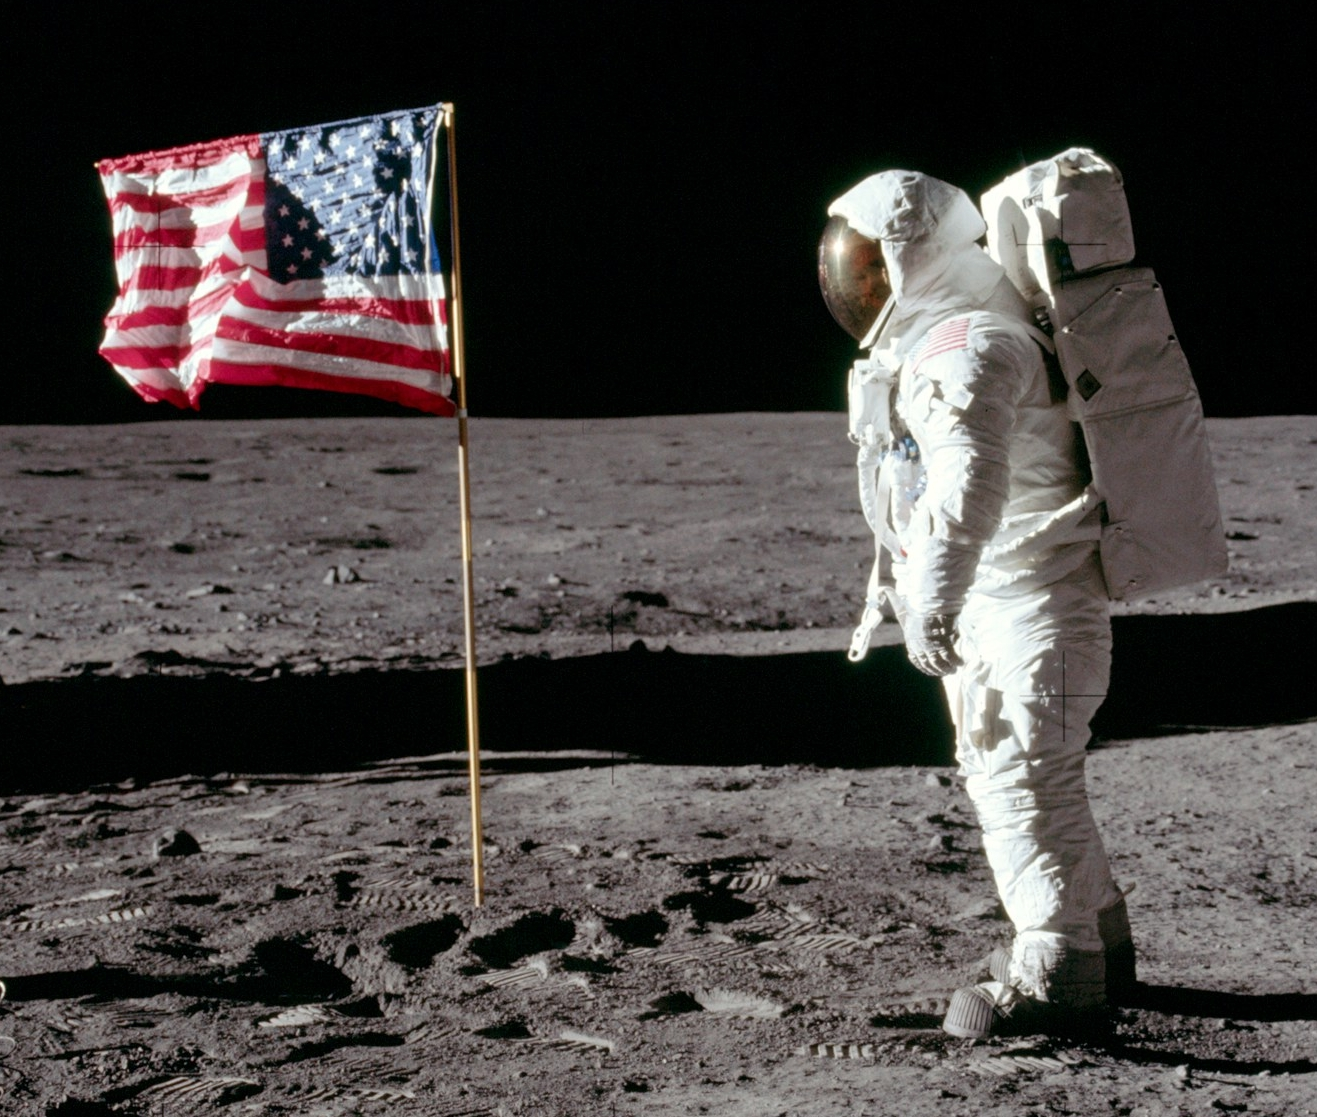 neil armstrong on the moon 1969 - photo #10